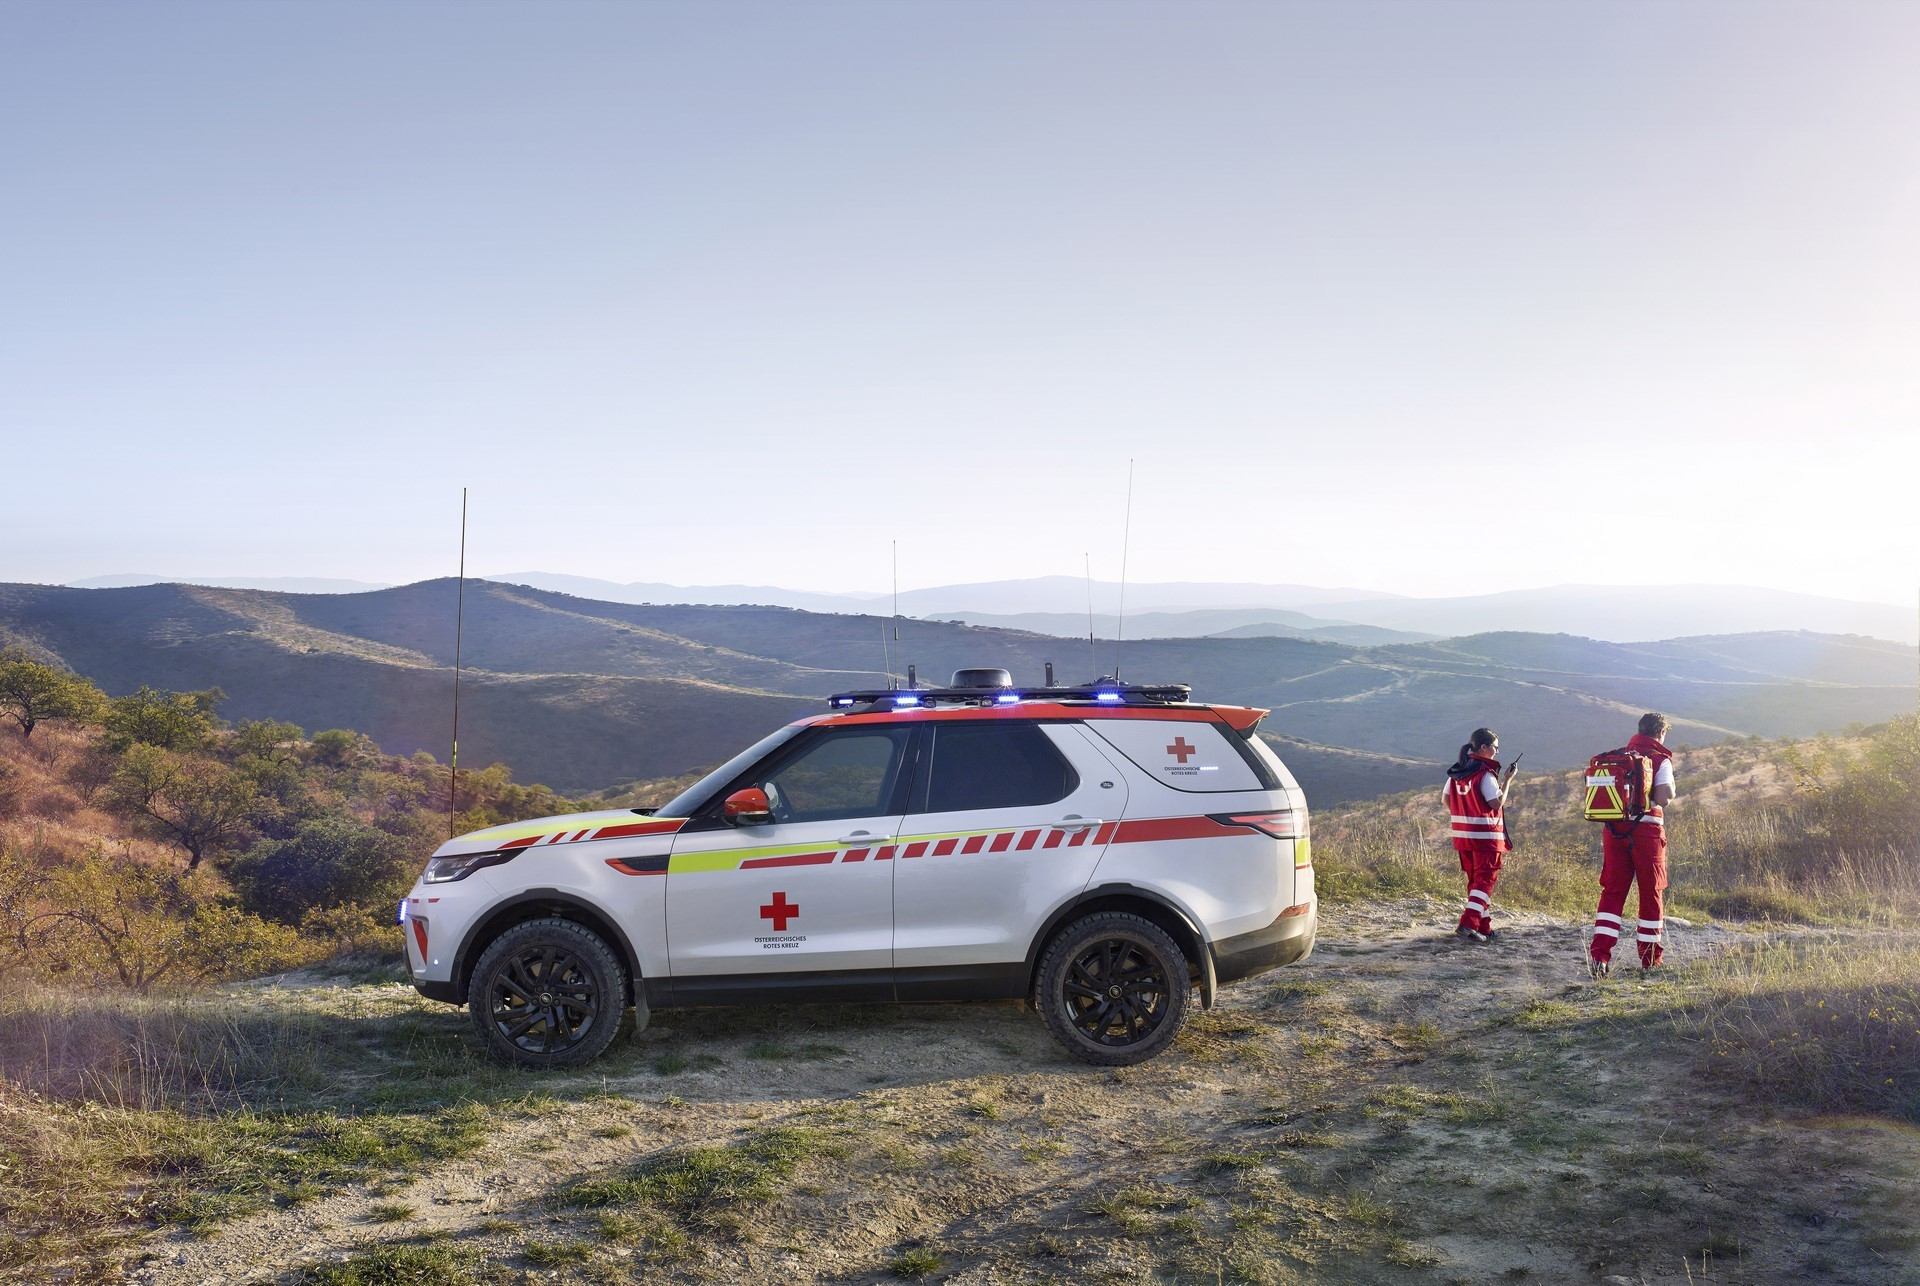 Land Rover Discovery Emergency Vehicle (15)